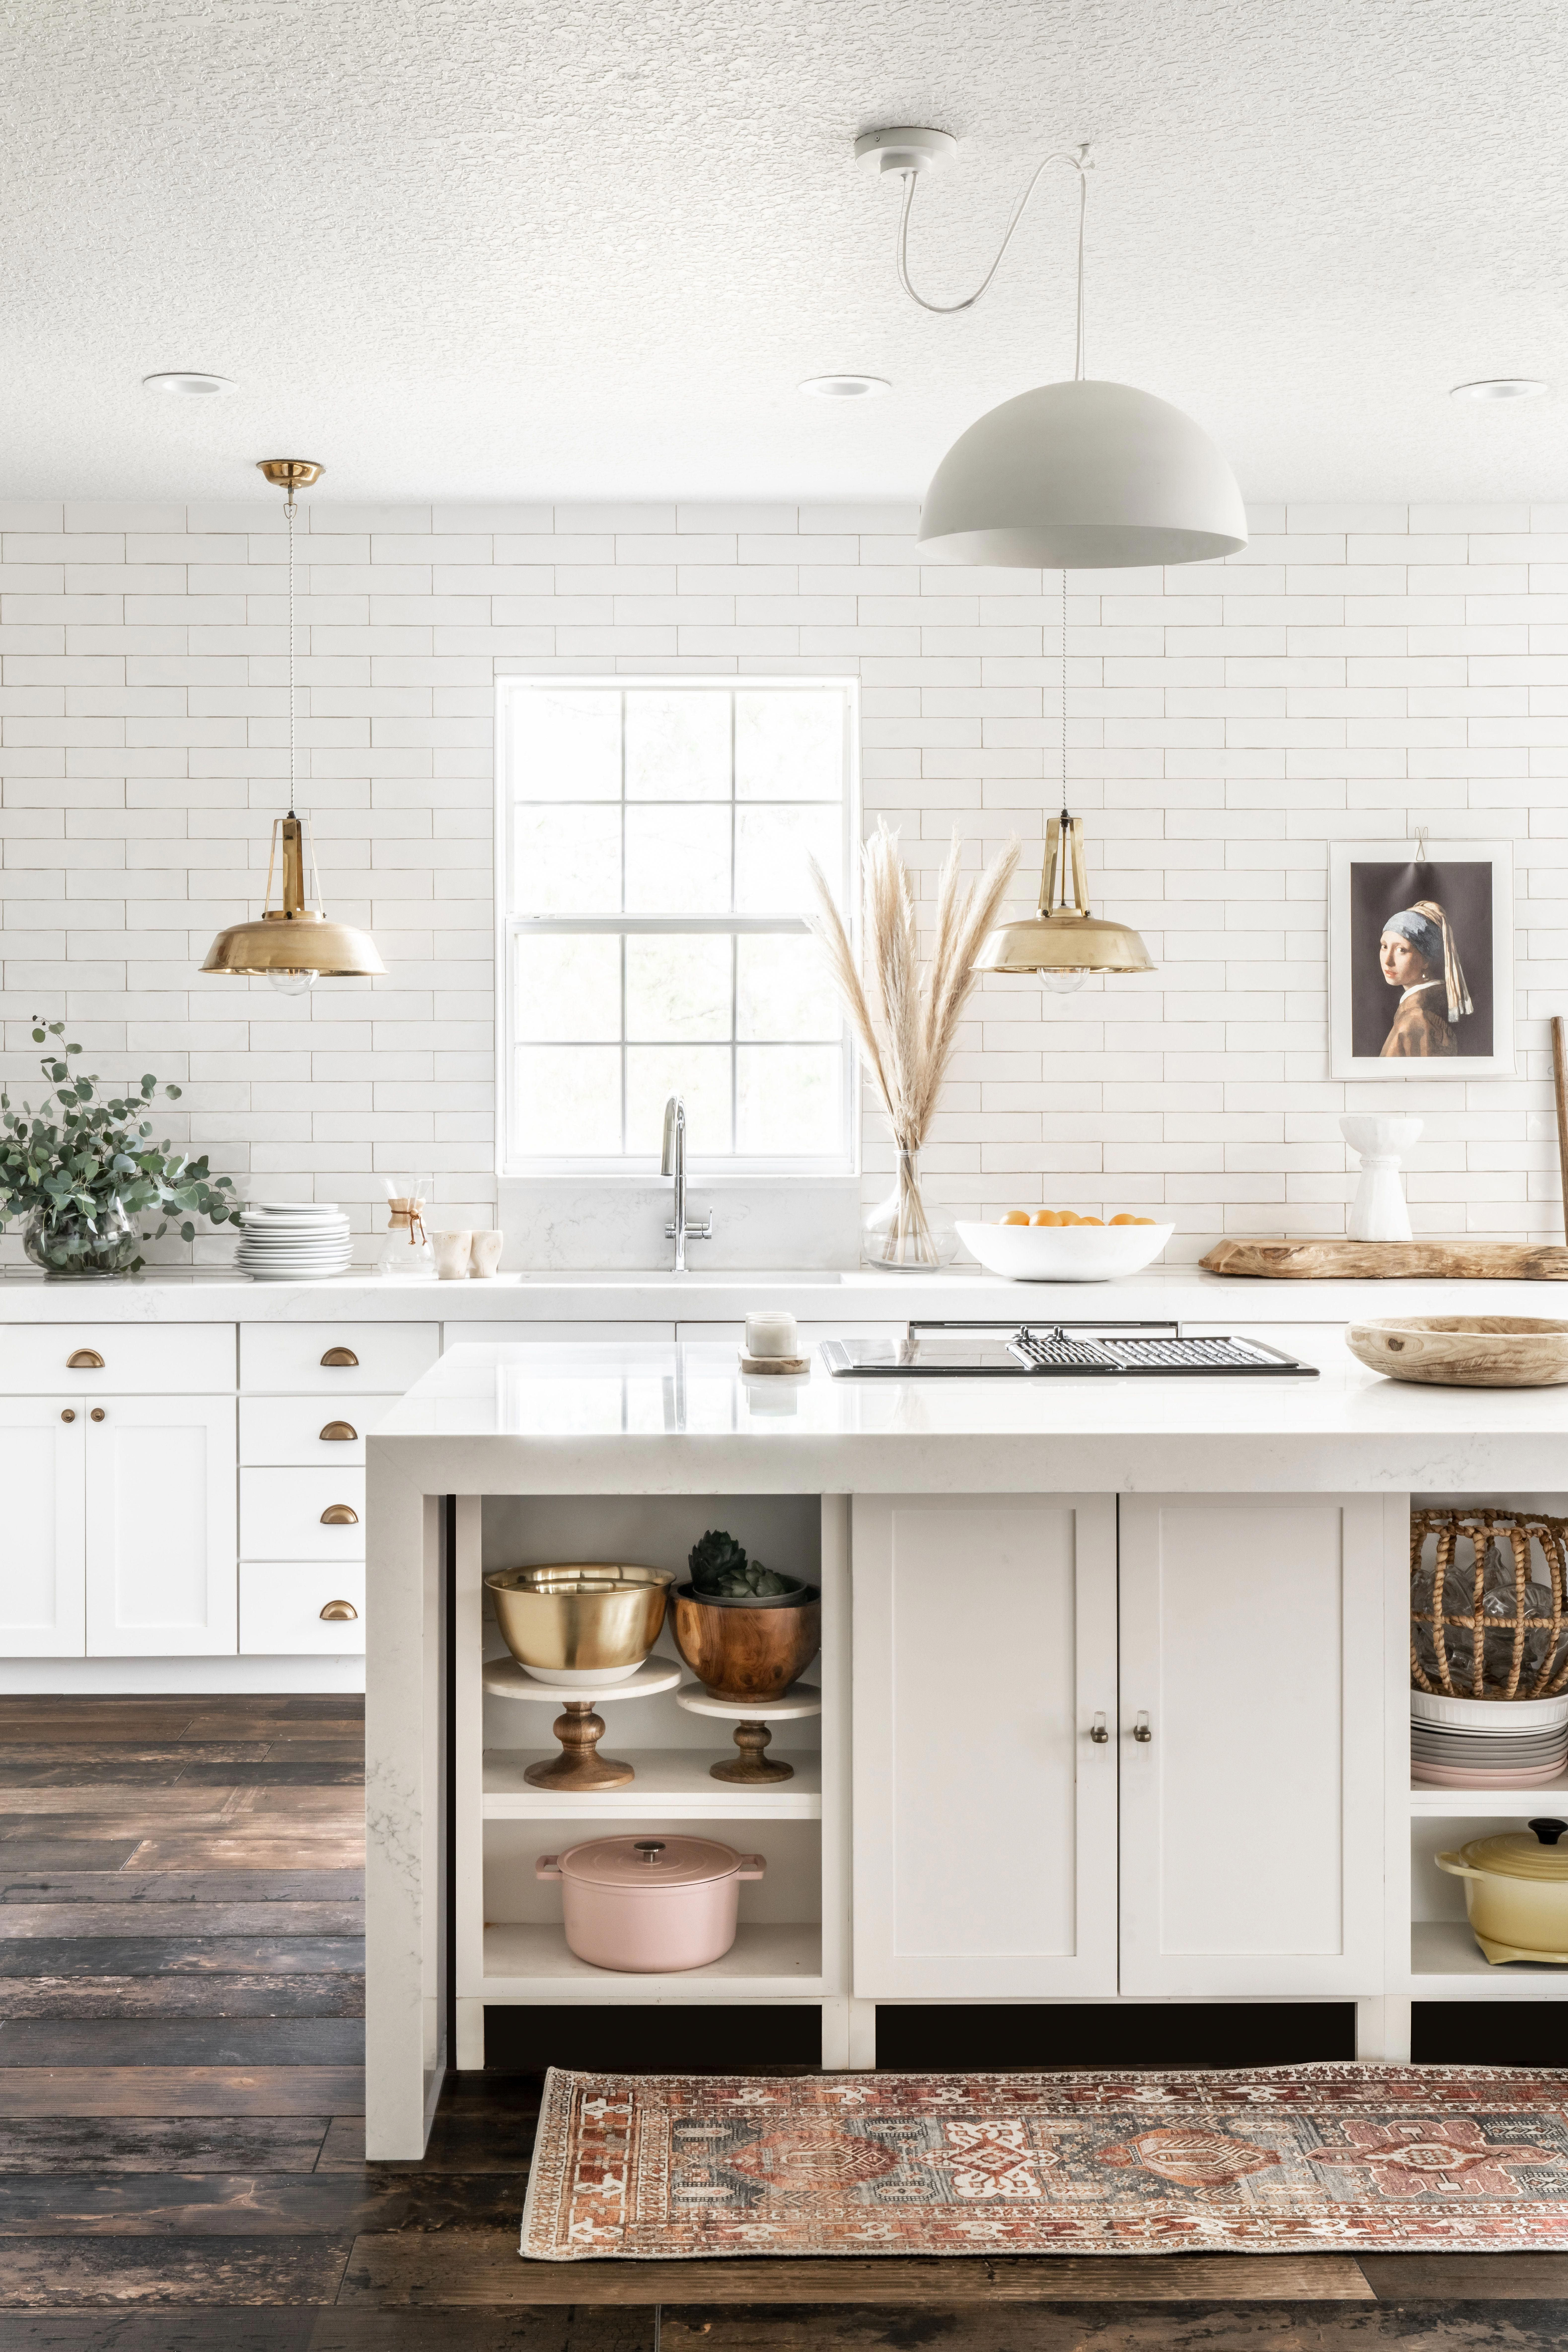 This Kitchen S Textured Tiles Are Just The Start Of Its Euro Chic Refresh Kitchendesign In 2020 Kitchens Without Upper Cabinets Rustic Kitchen Design Rustic Kitchen